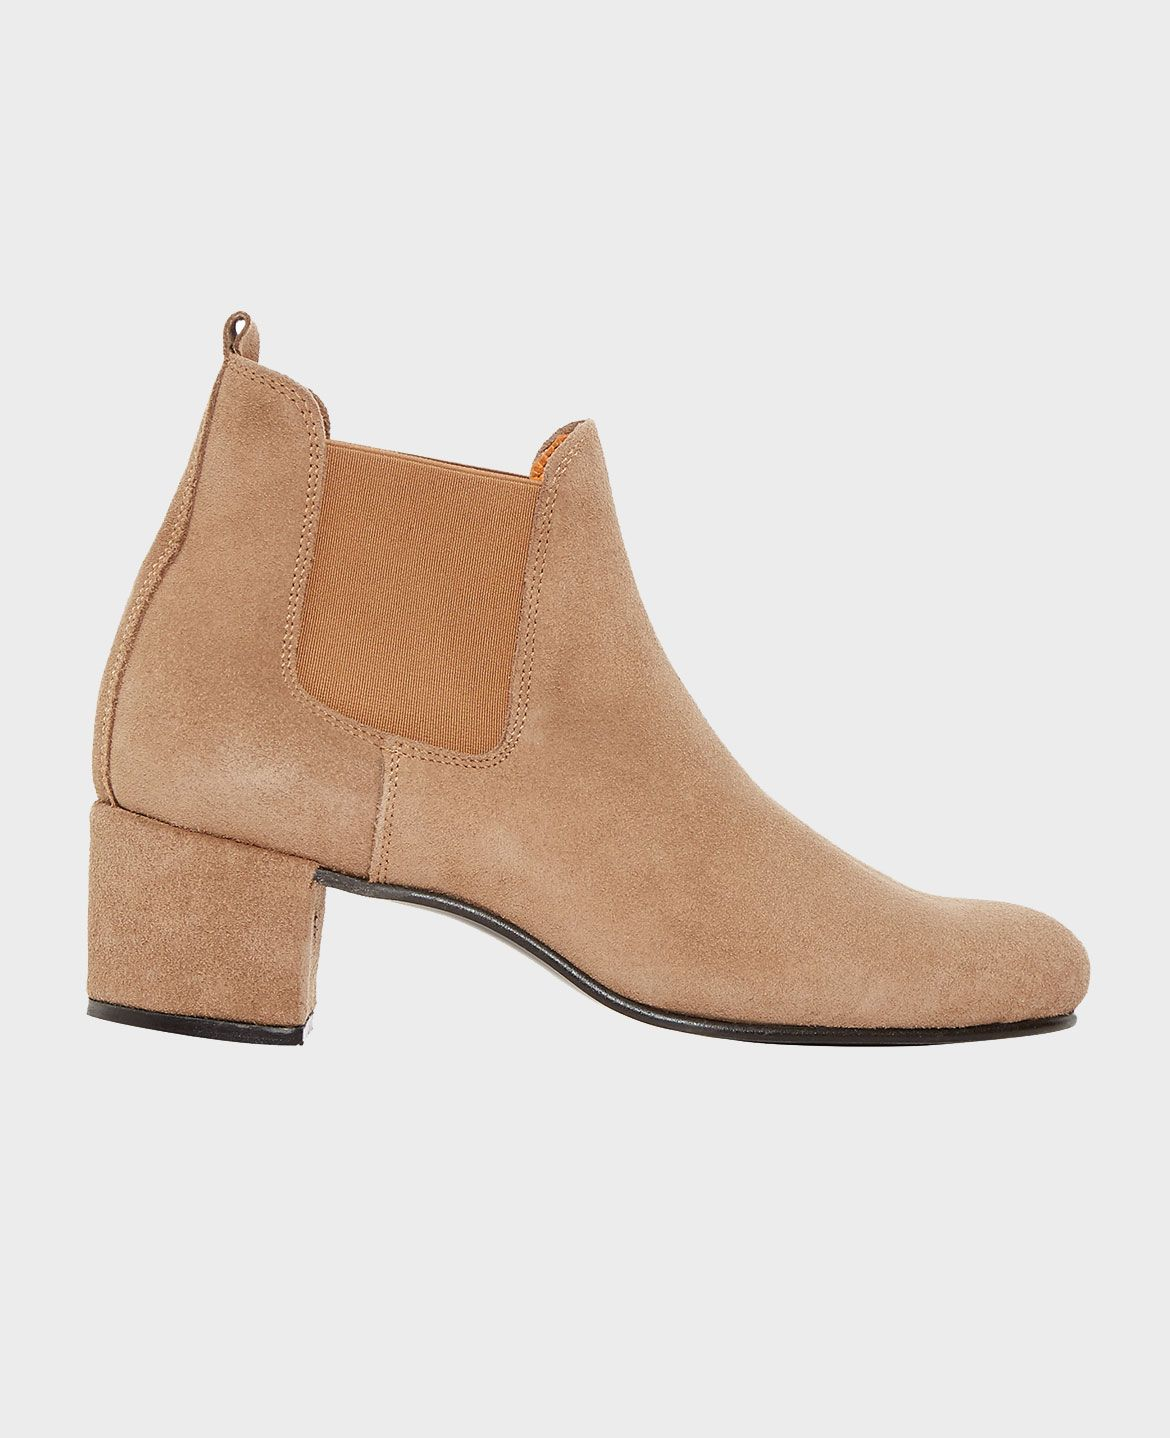 Heeled Ankle Boots in Sand Suede